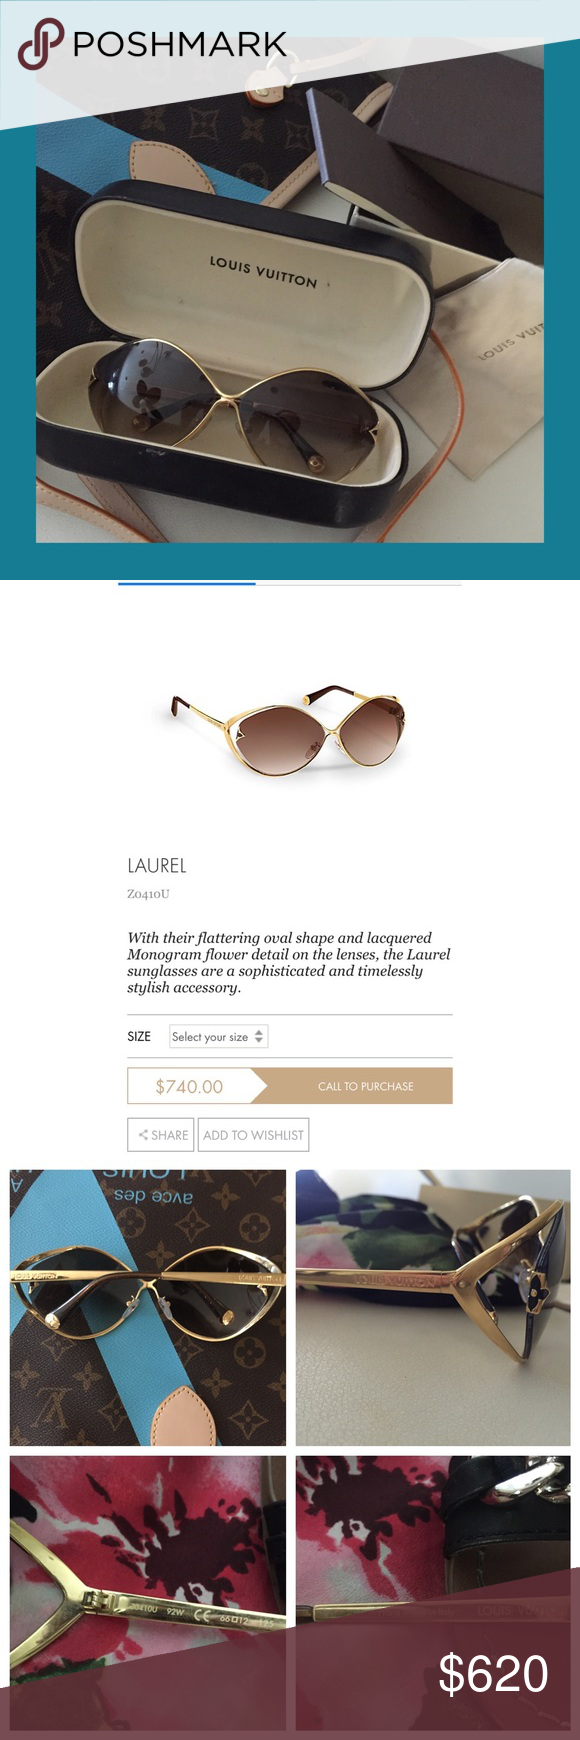 cdb52a247fd Louis Vuitton Laurel Sunglasses With their flattering oval shape and  lacquered Monogram flower detail on the